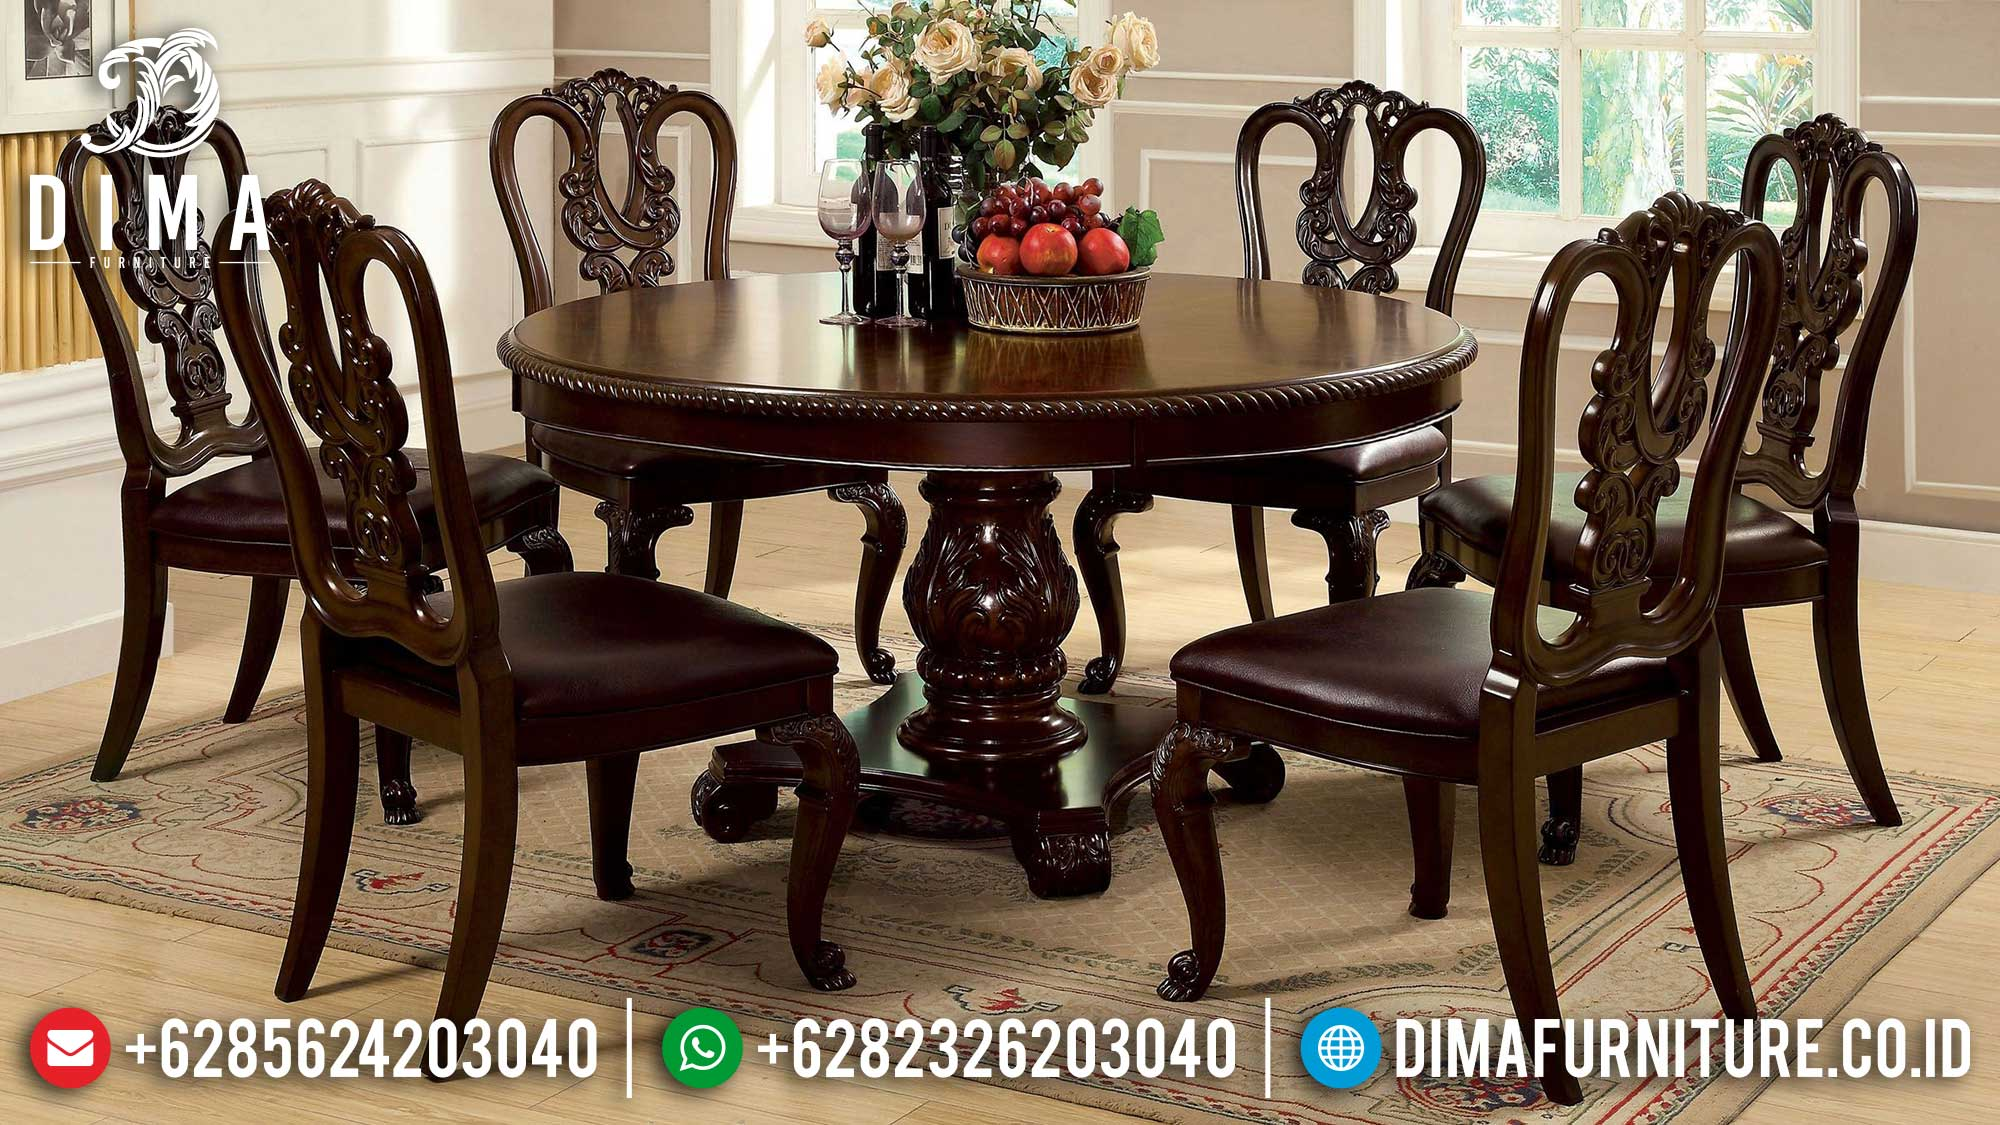 Model Meja Makan Minimalis Bundar Jepara Loving Design Luxury MM-0870